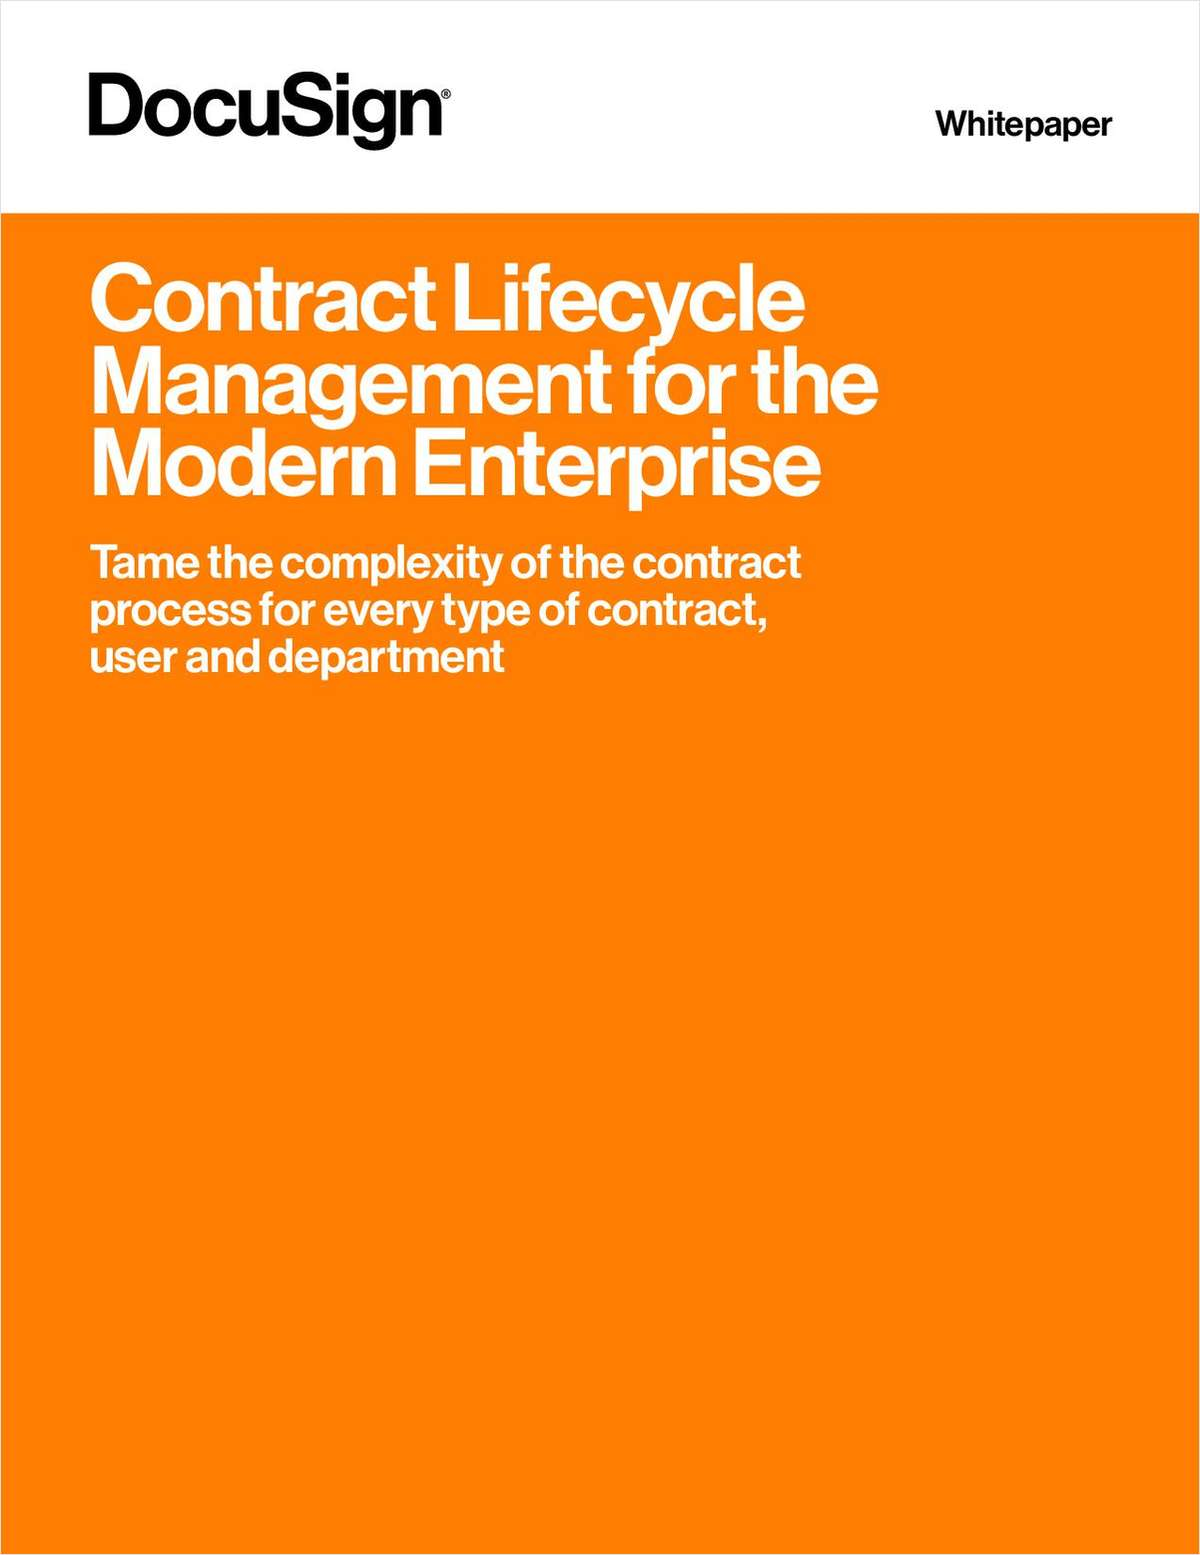 Contract Lifecycle Management for the Modern Enterprise